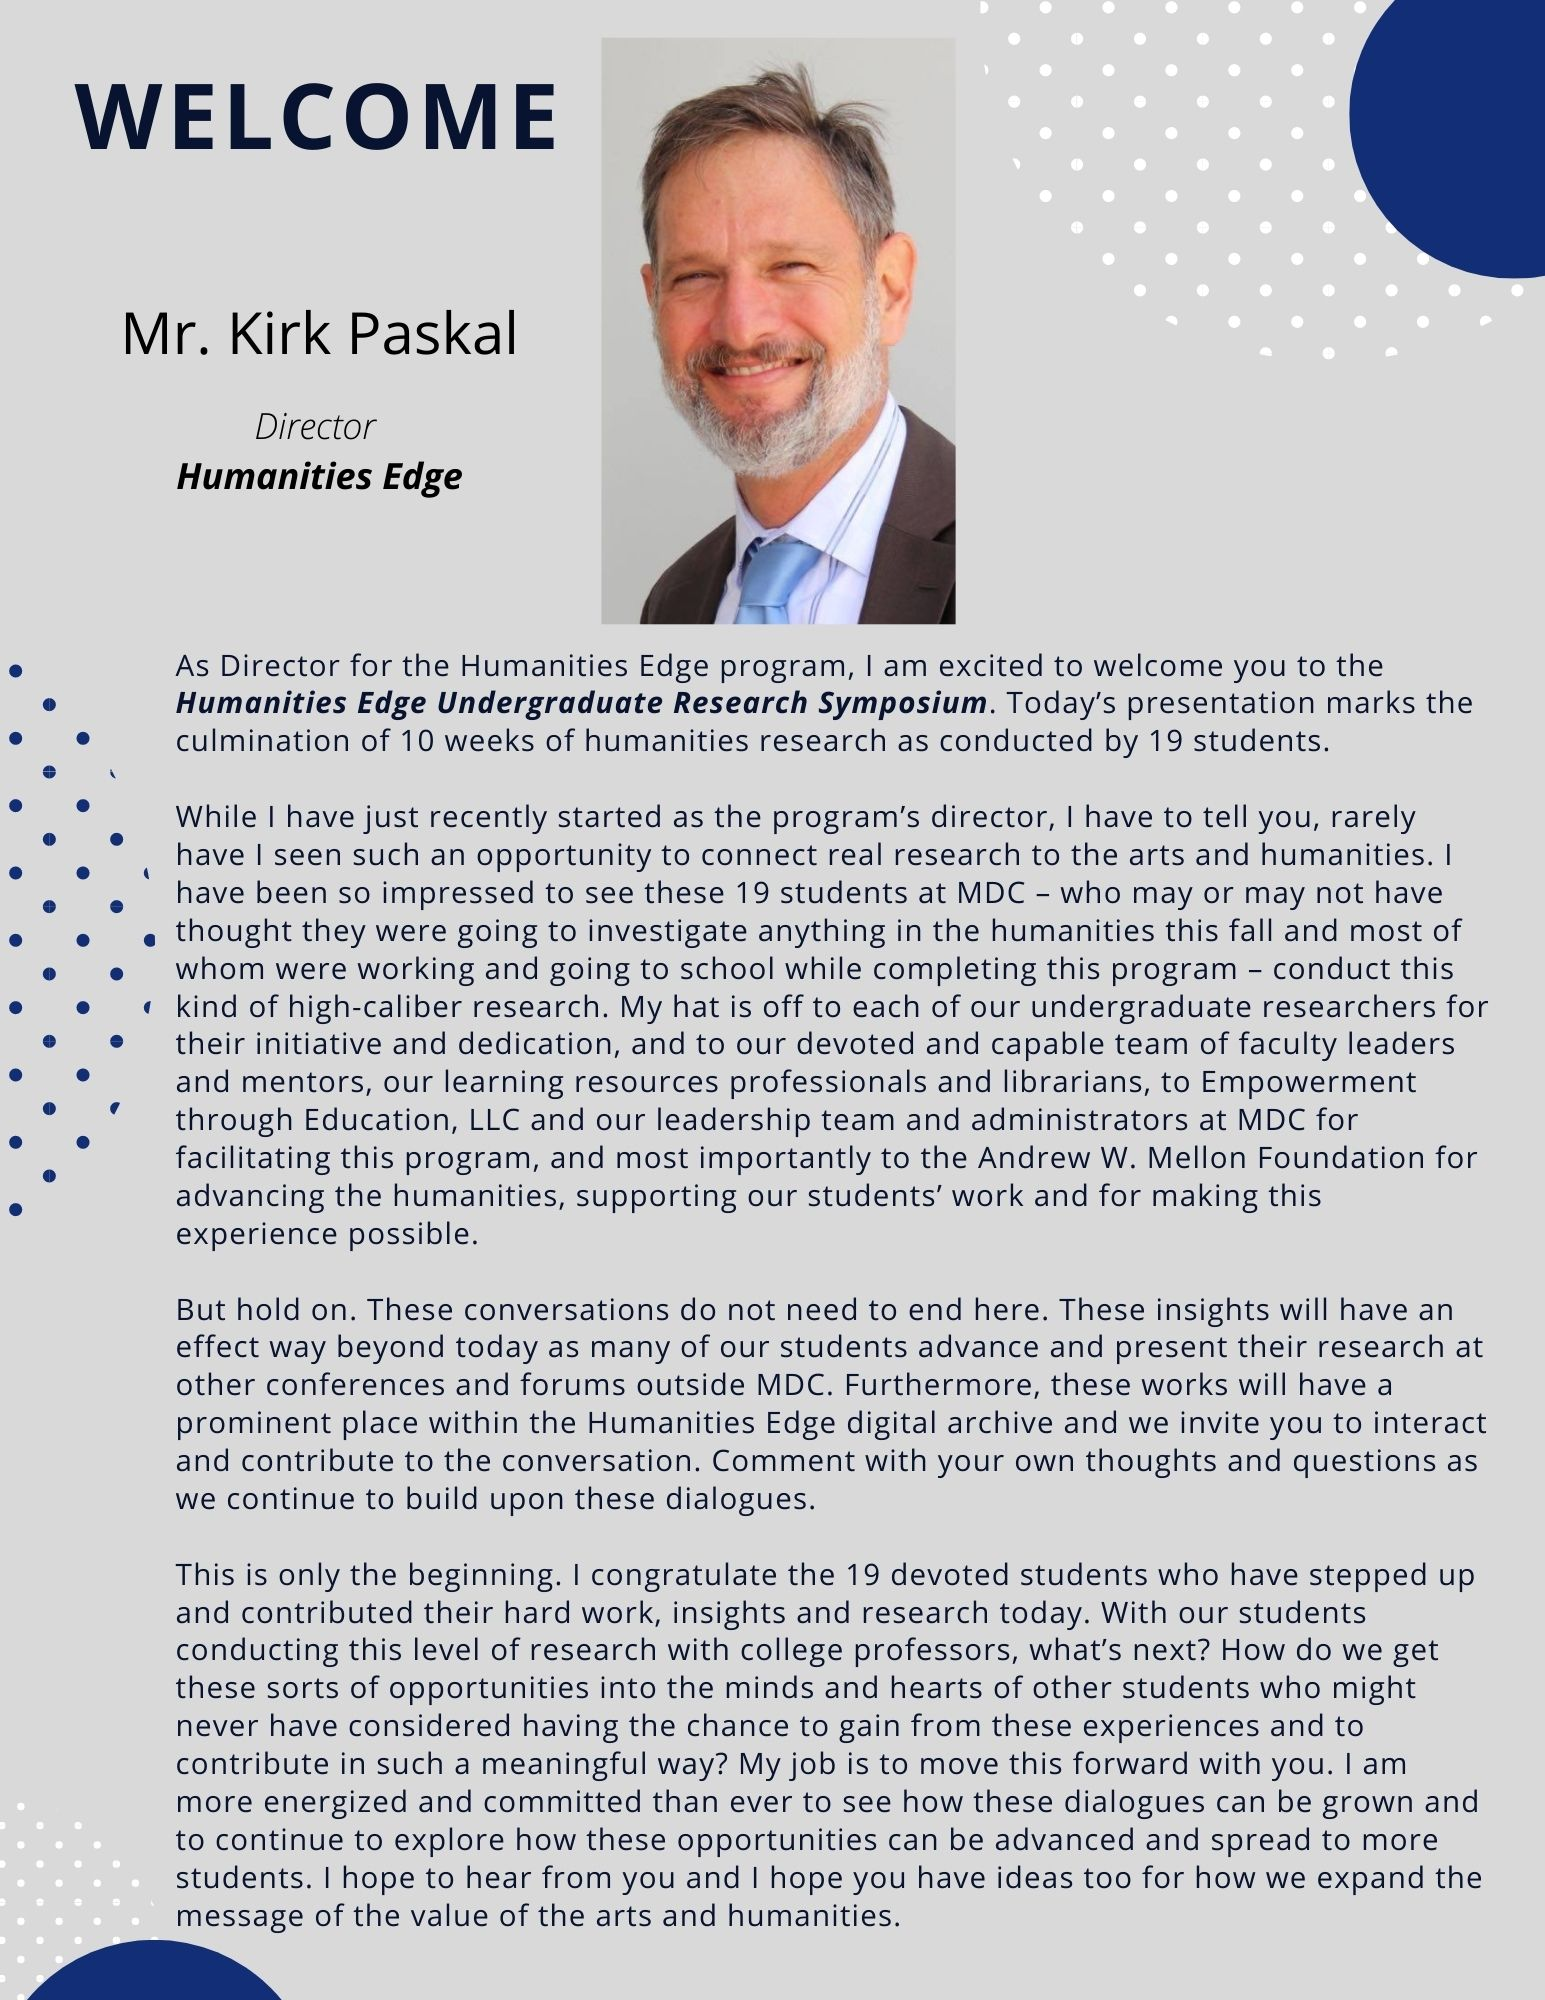 Welcome message from Kirk Paskal, Humanities Edge Director